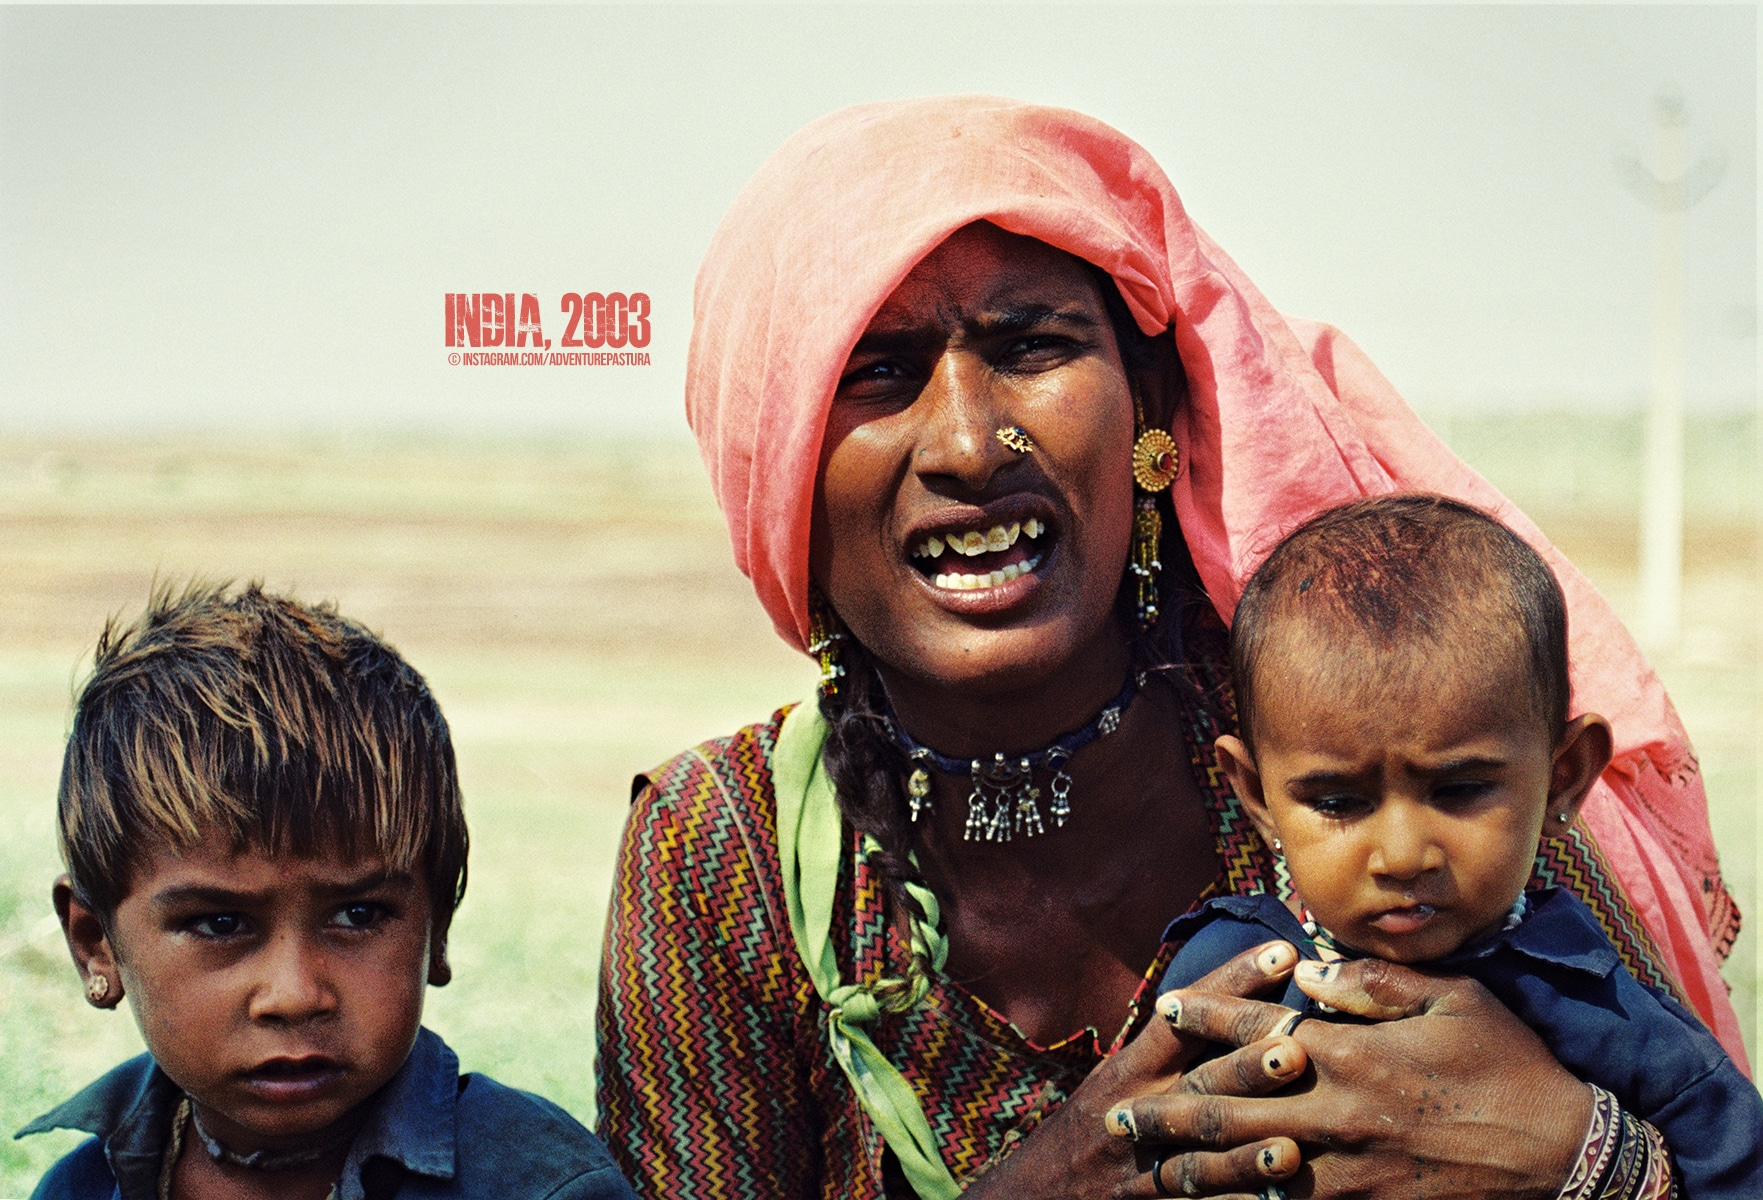 A poor Indian mother begs for help with her two kids in Rajastan, India. Photo by © Piero Zilio.